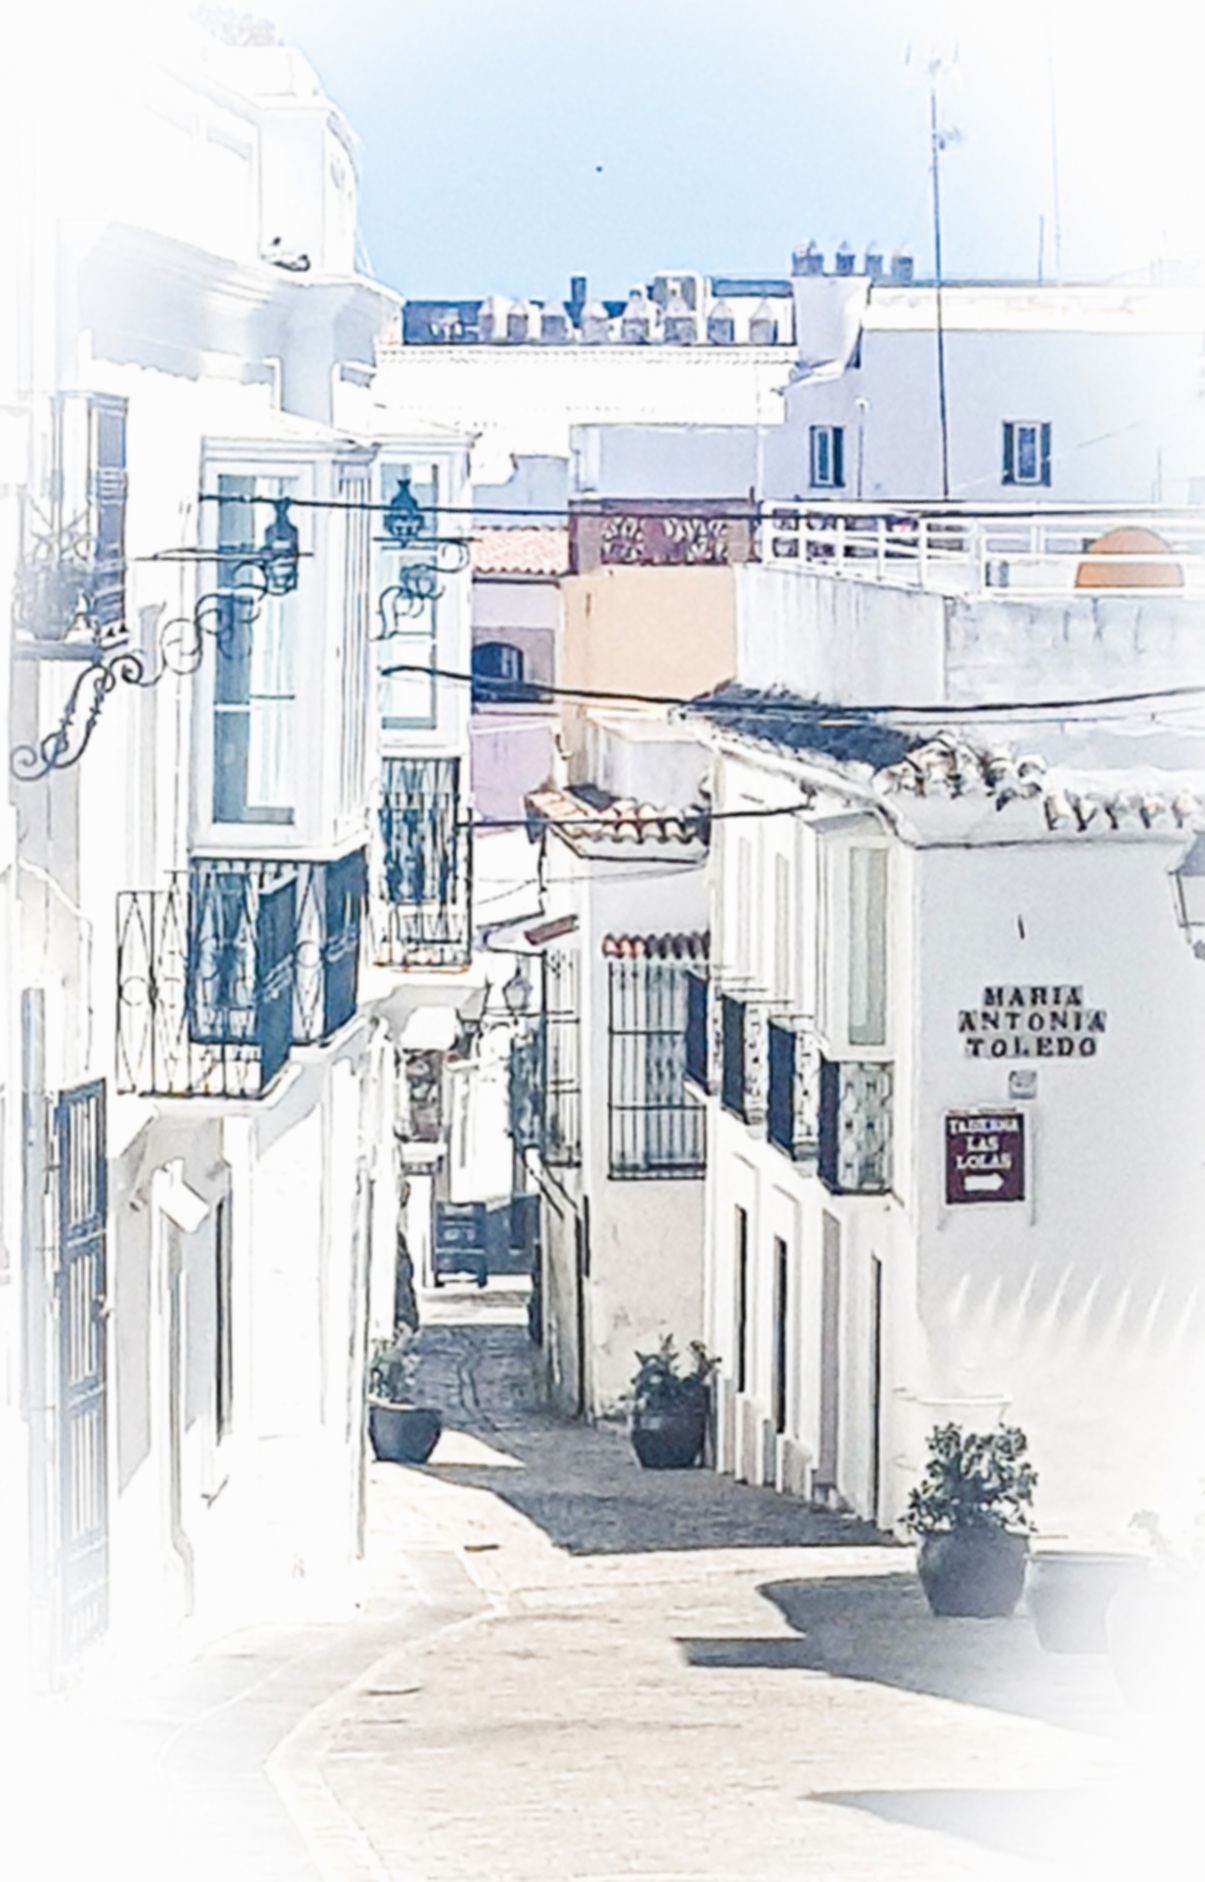 Whitewashed Street in Tarifa Old Town